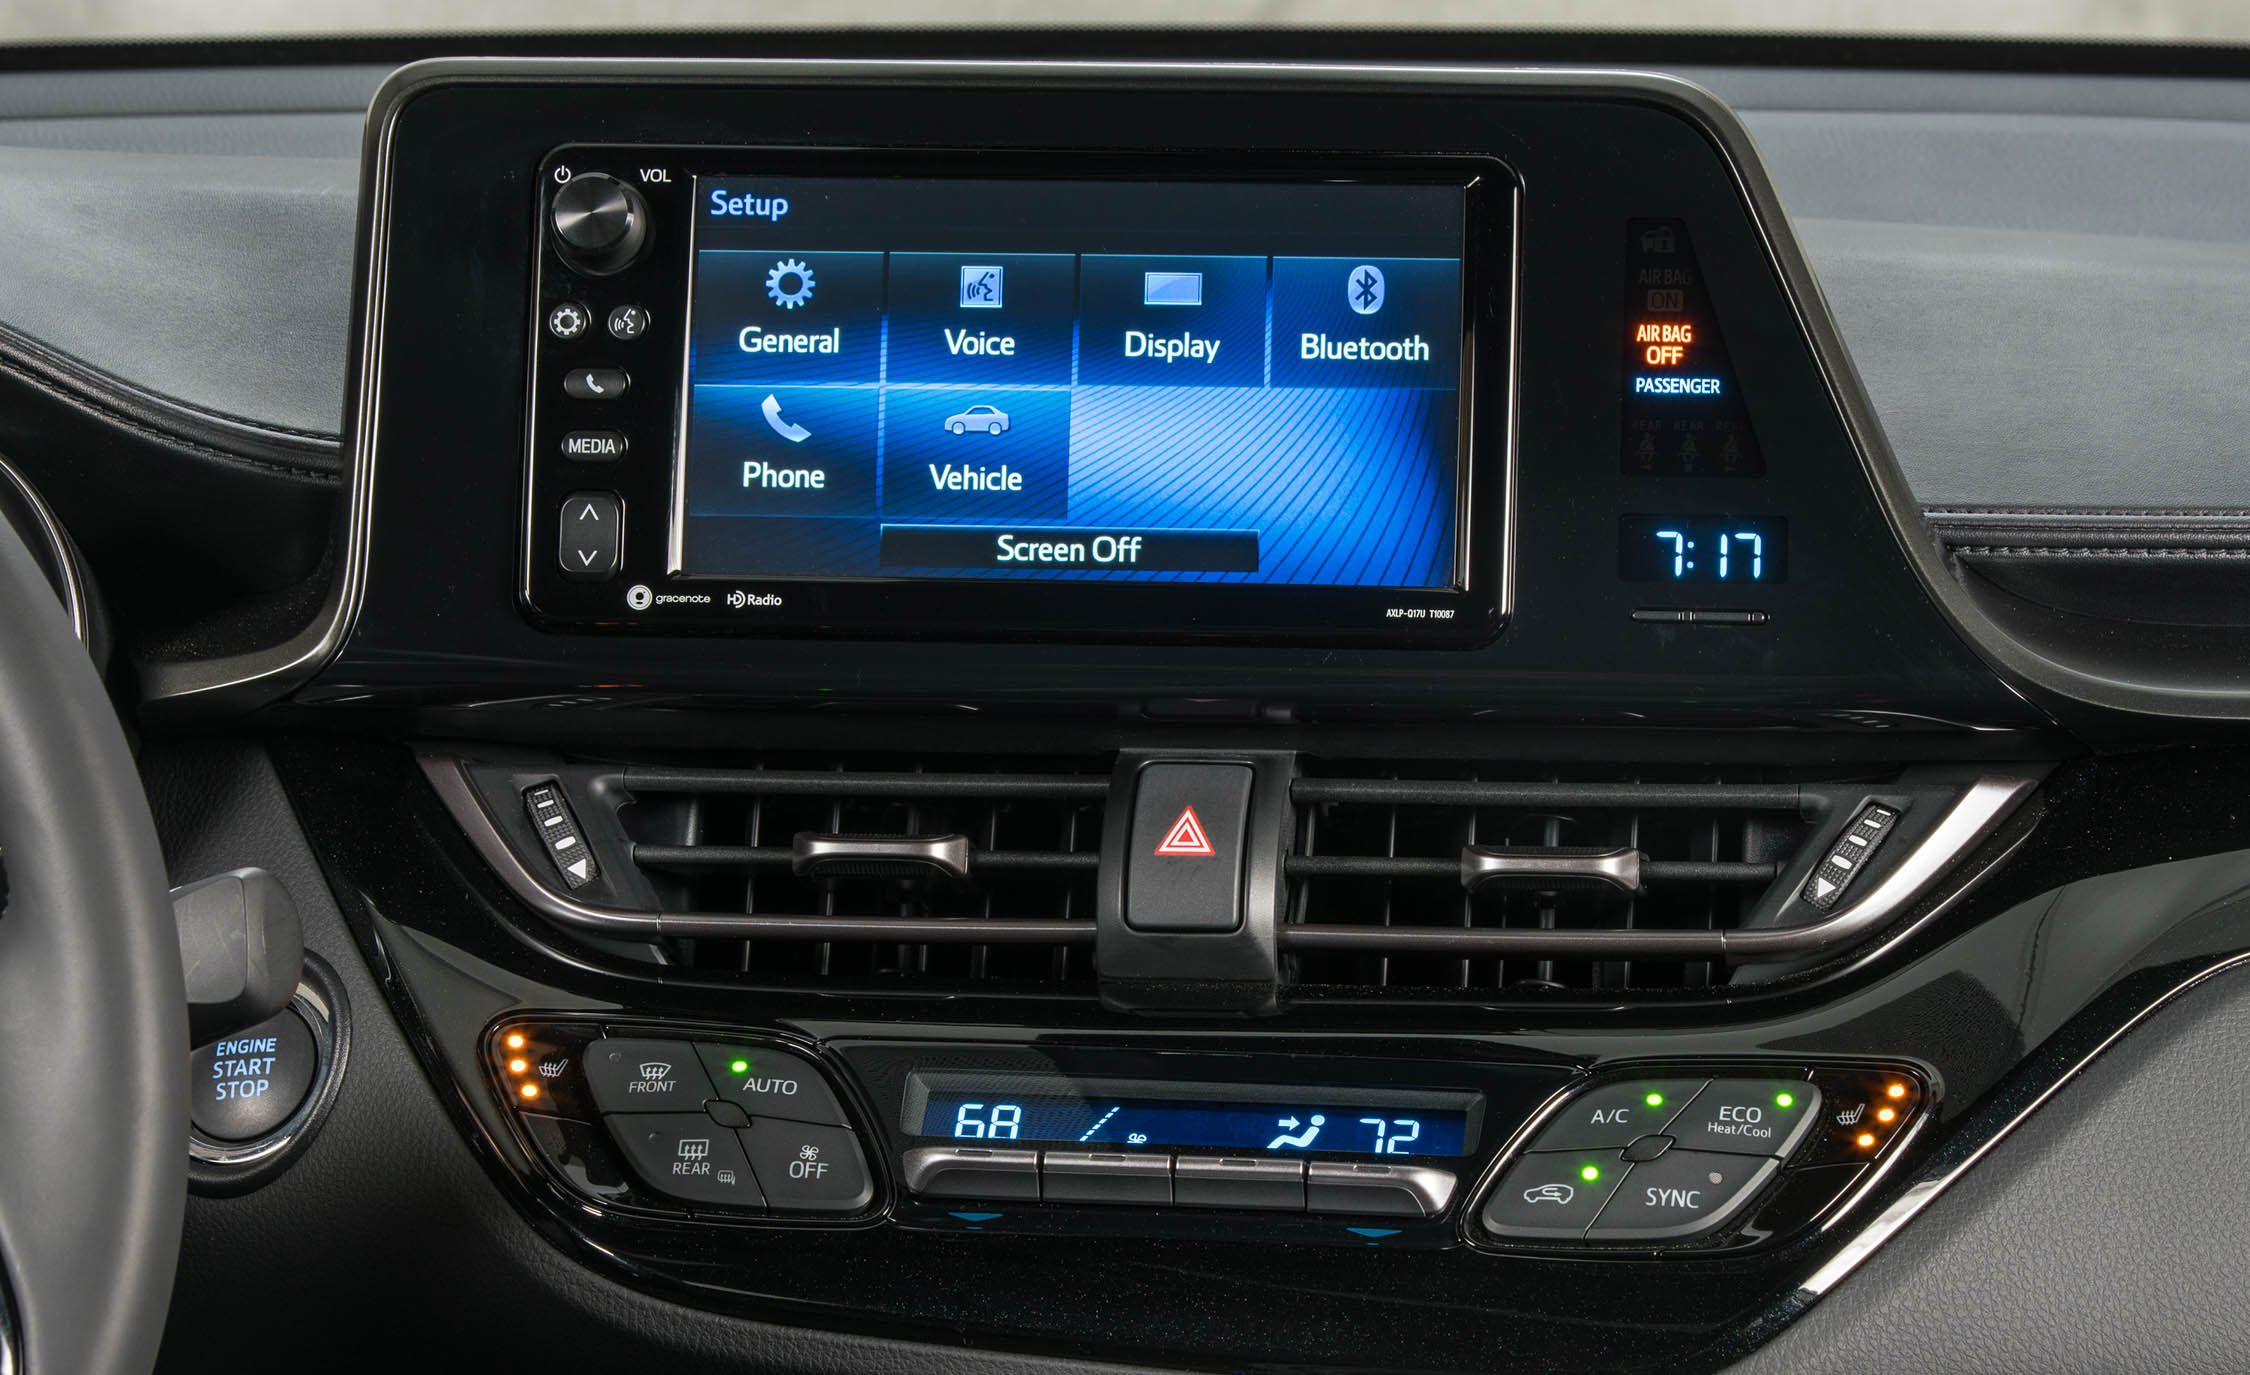 2018 Toyota C HR Interior View Center Headunit Screen (Photo 16 of 33)